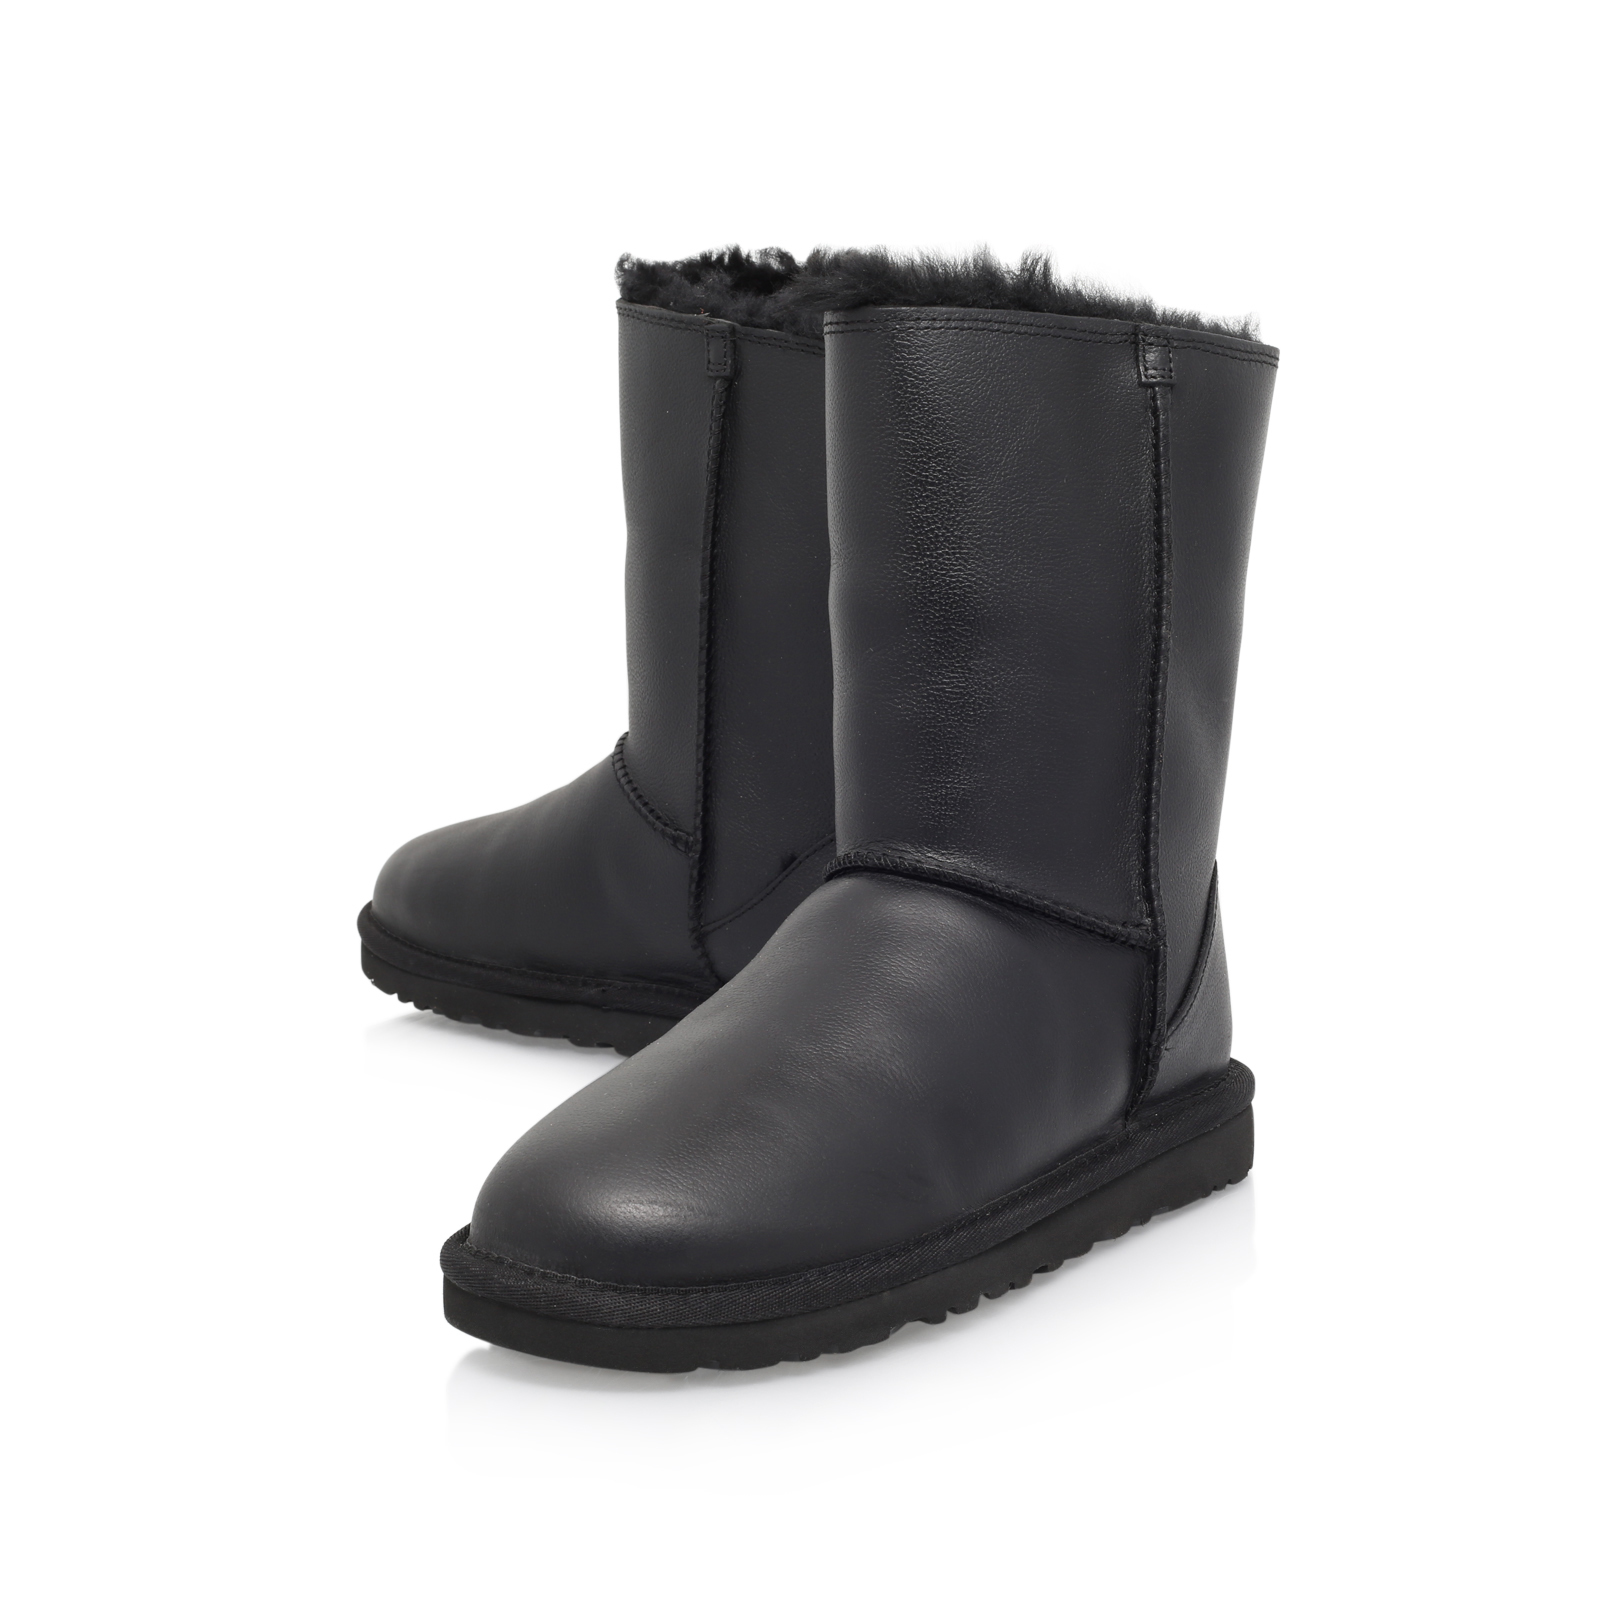 CLASSIC SHORT ZIP Ugg Classic Short Zip Black Leather Flat Ankle Boot by UGG